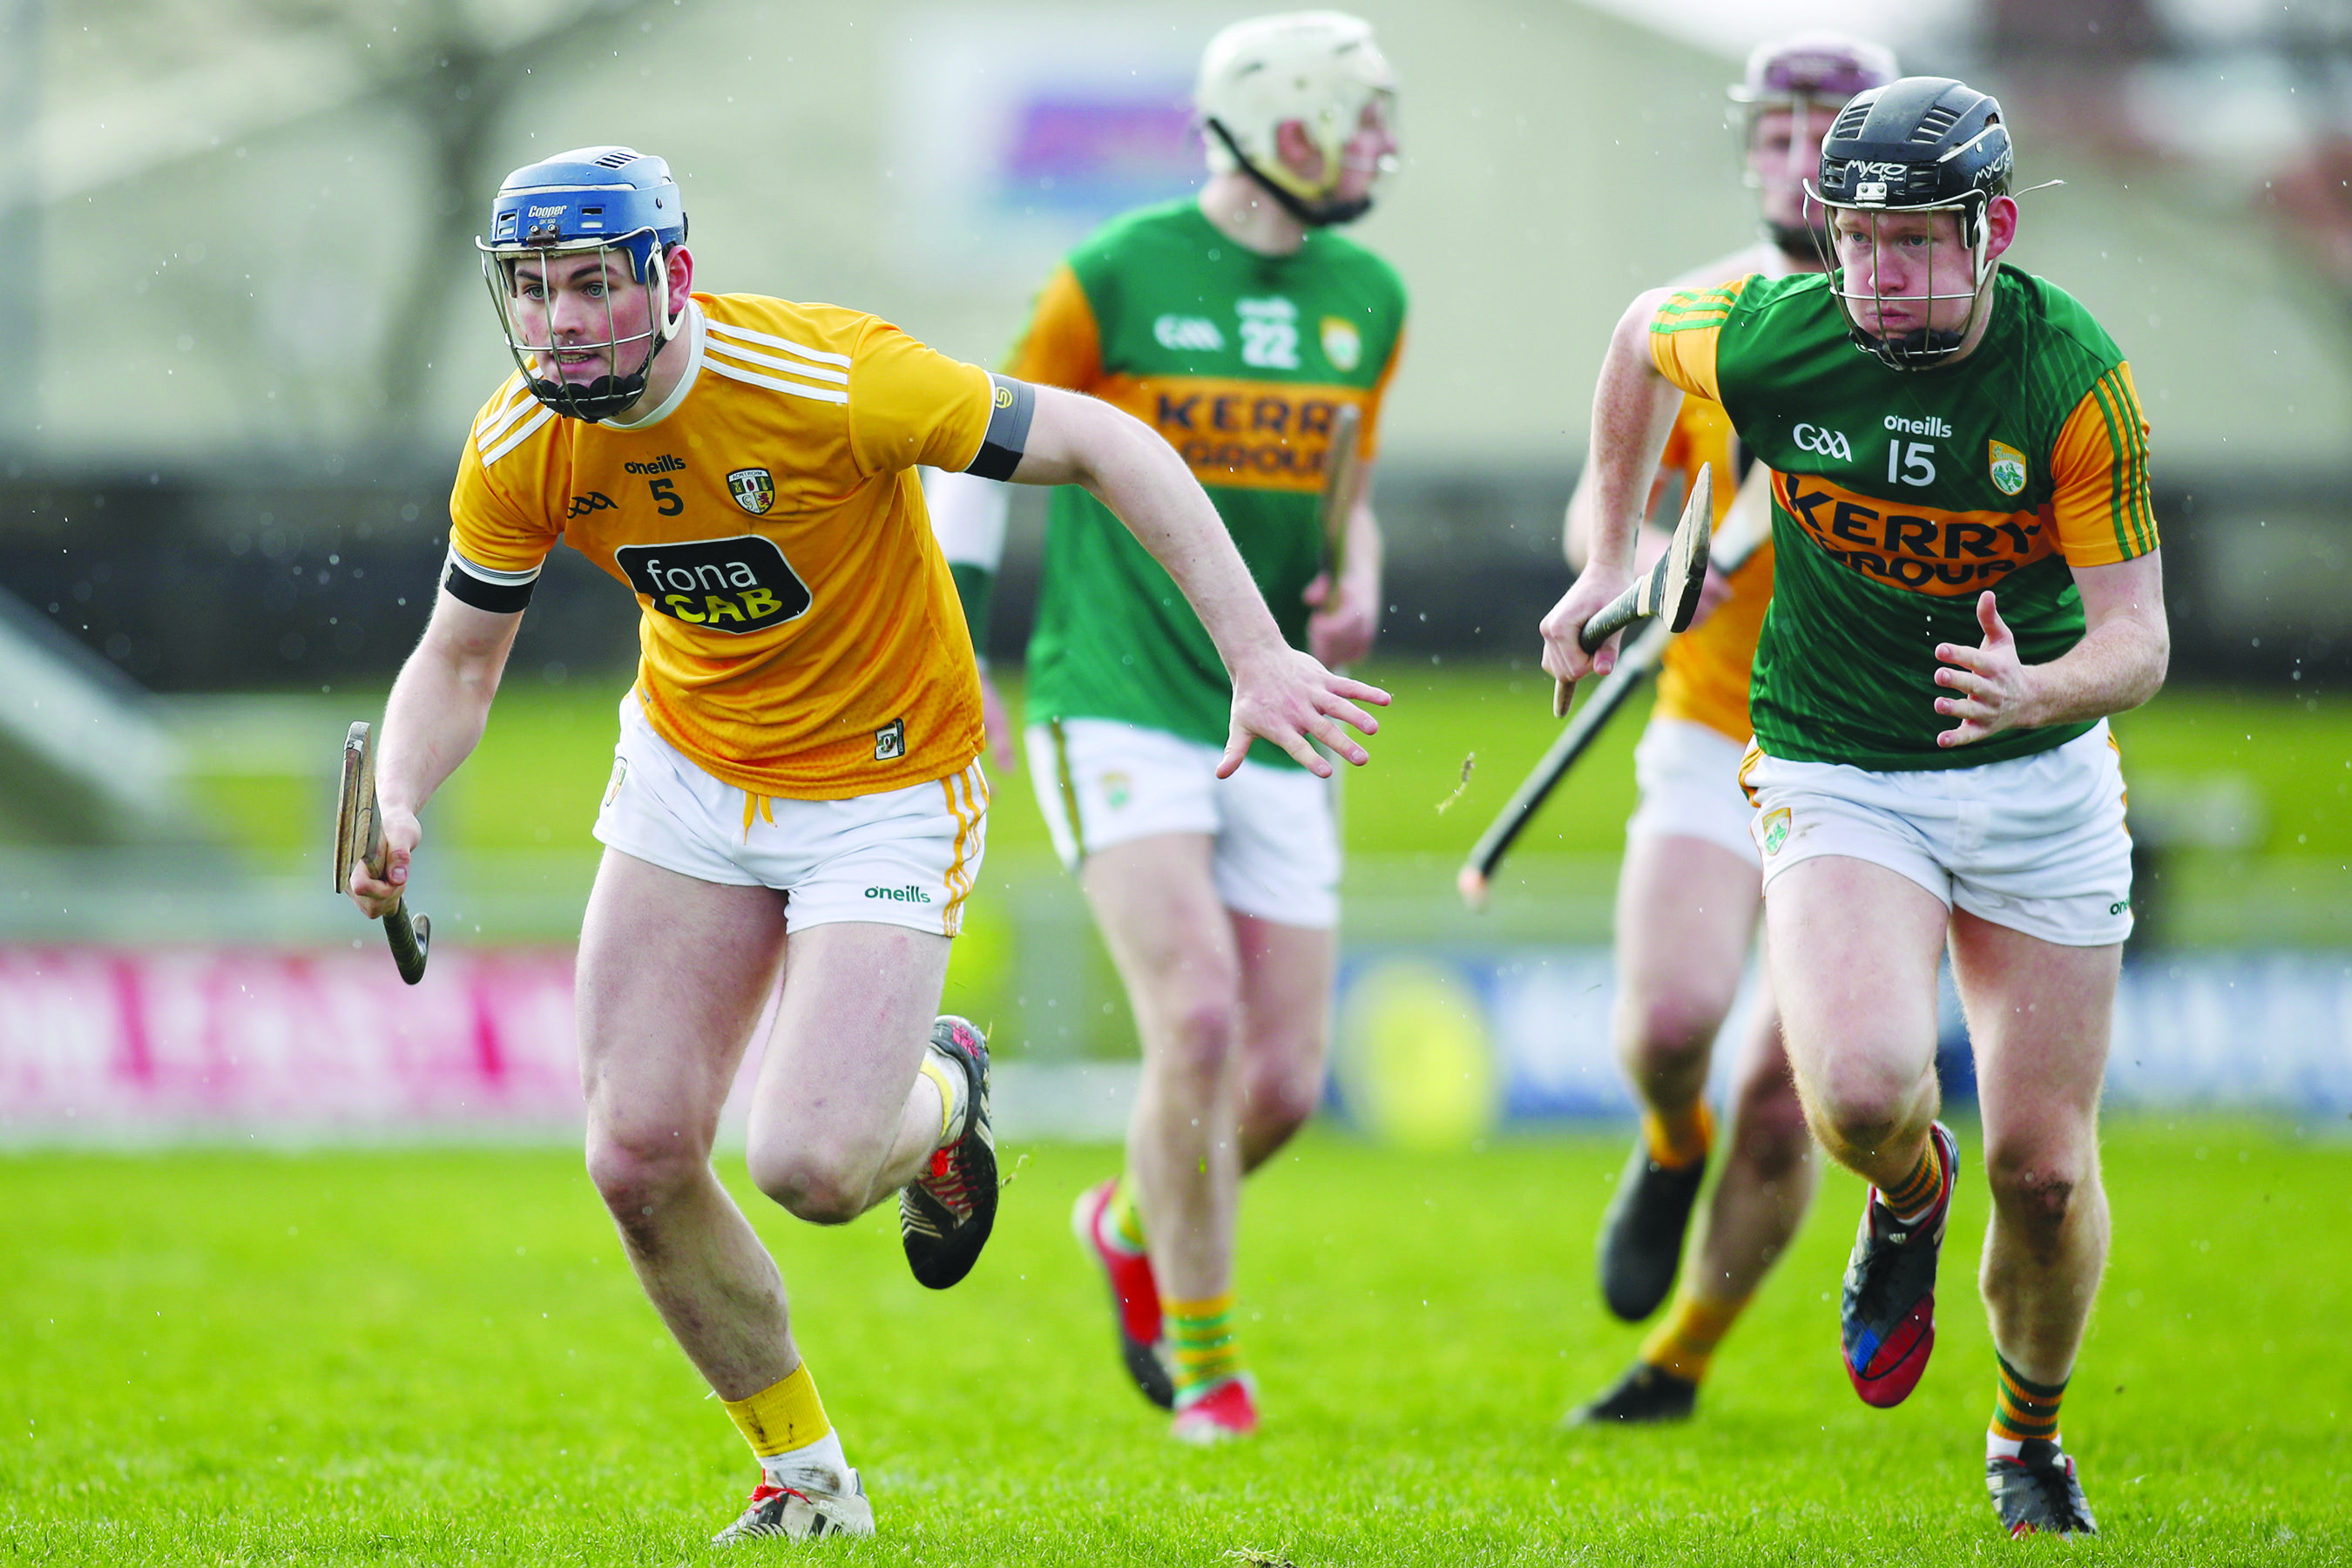 Gerard Walsh in action for Antrim during their win over Kerry in Tralee in February